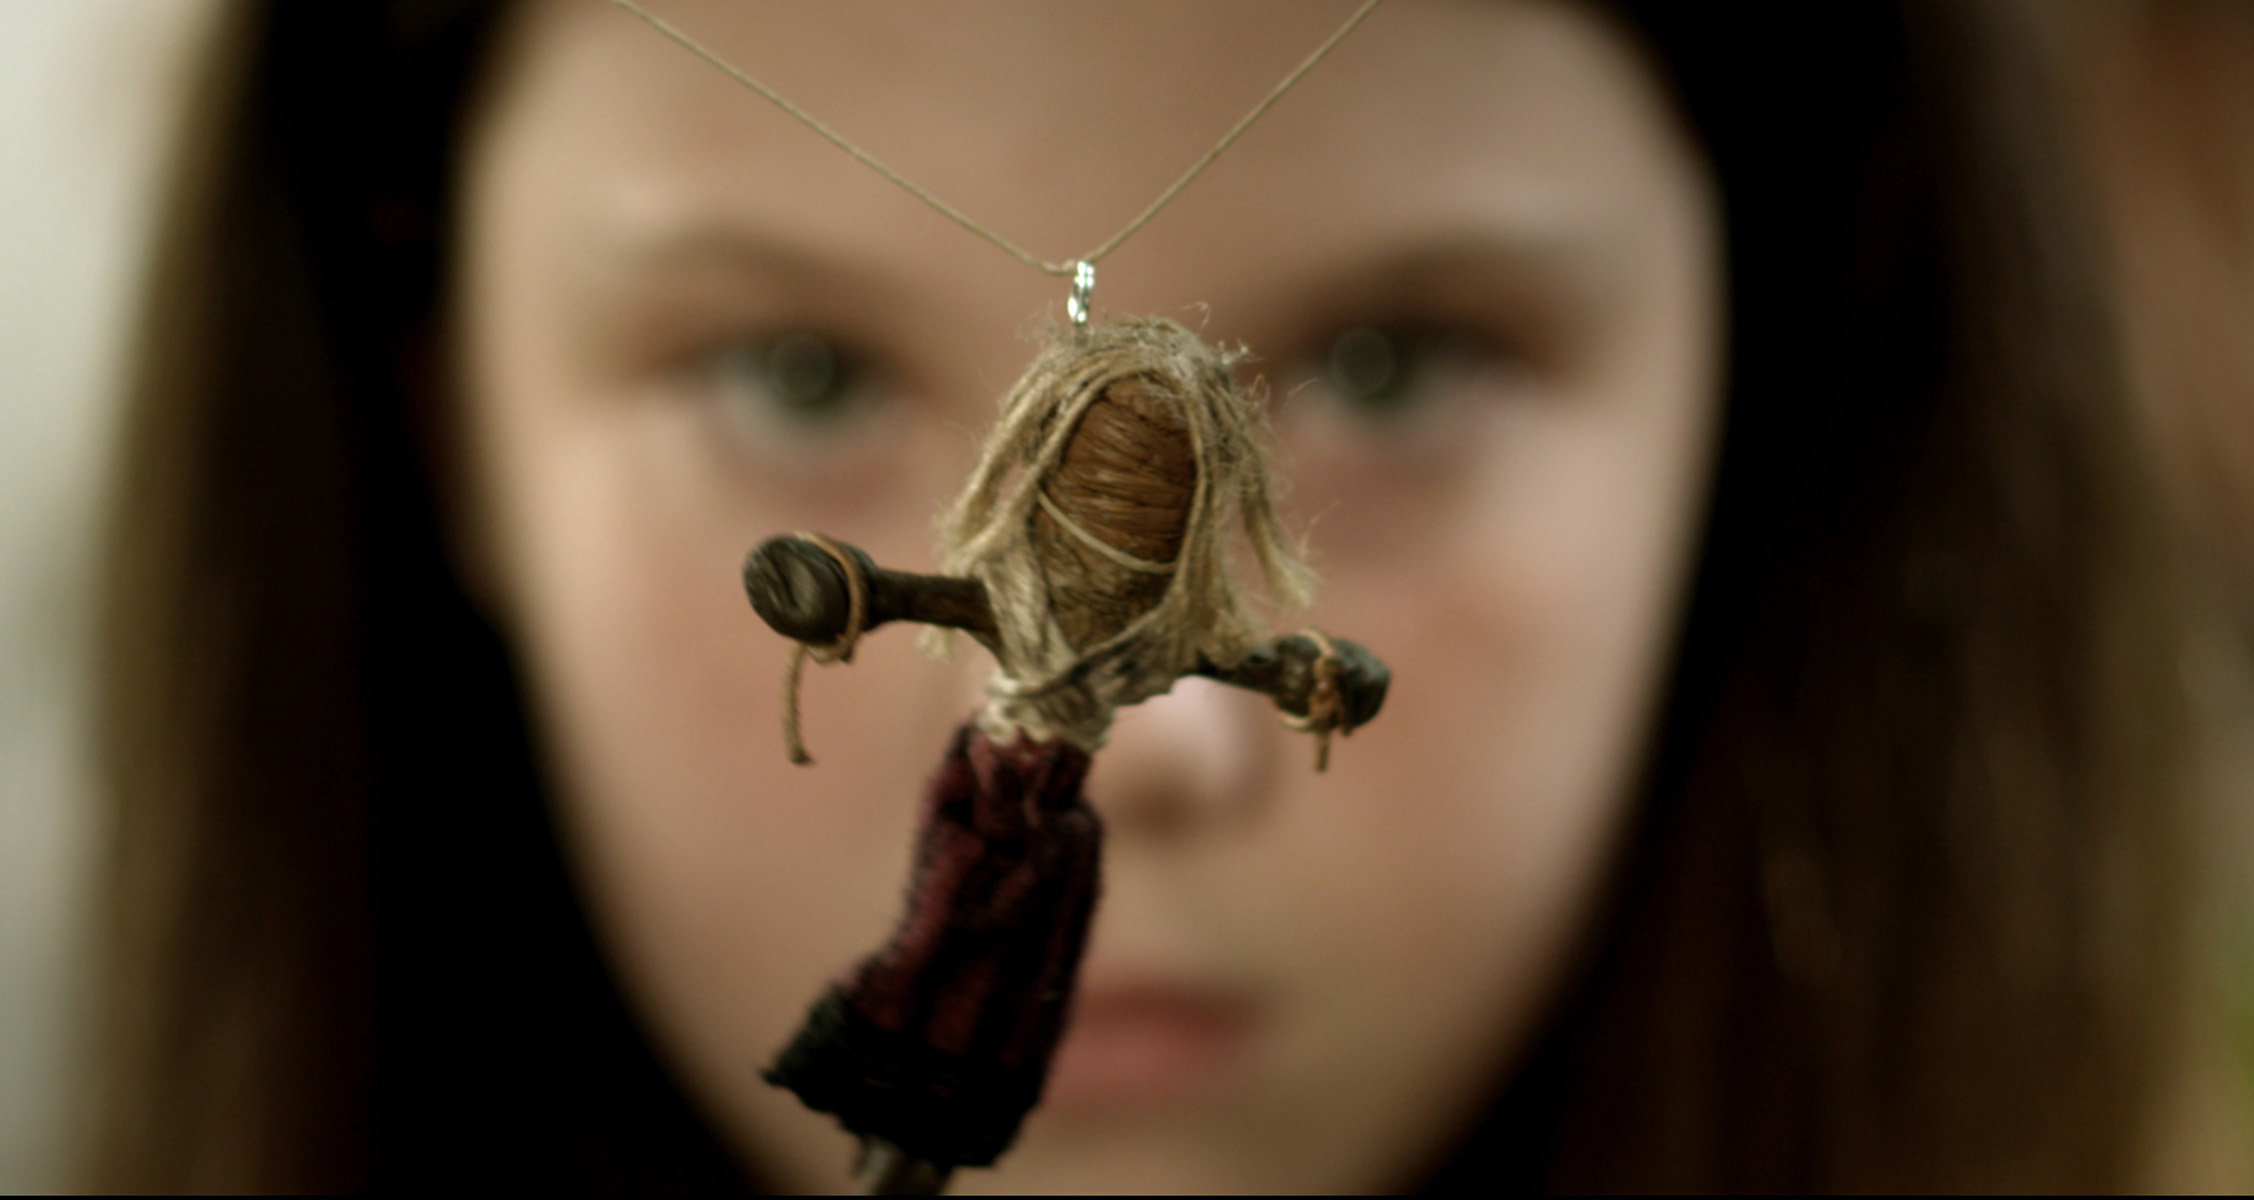 Guatemalan Legend Becomes Horror Story In Worry Dolls